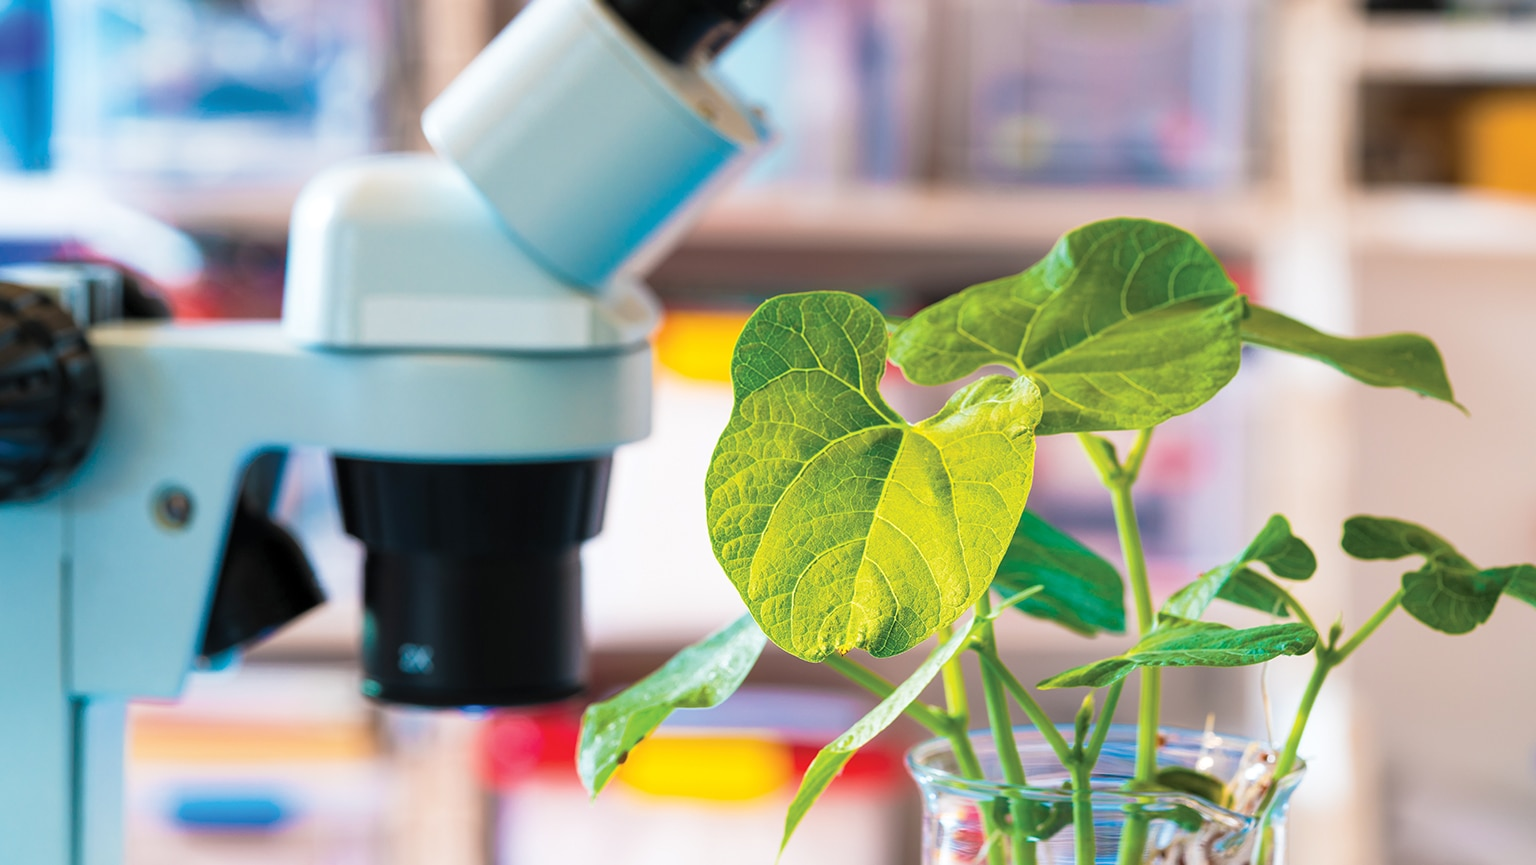 Modifying the Genes of Plants